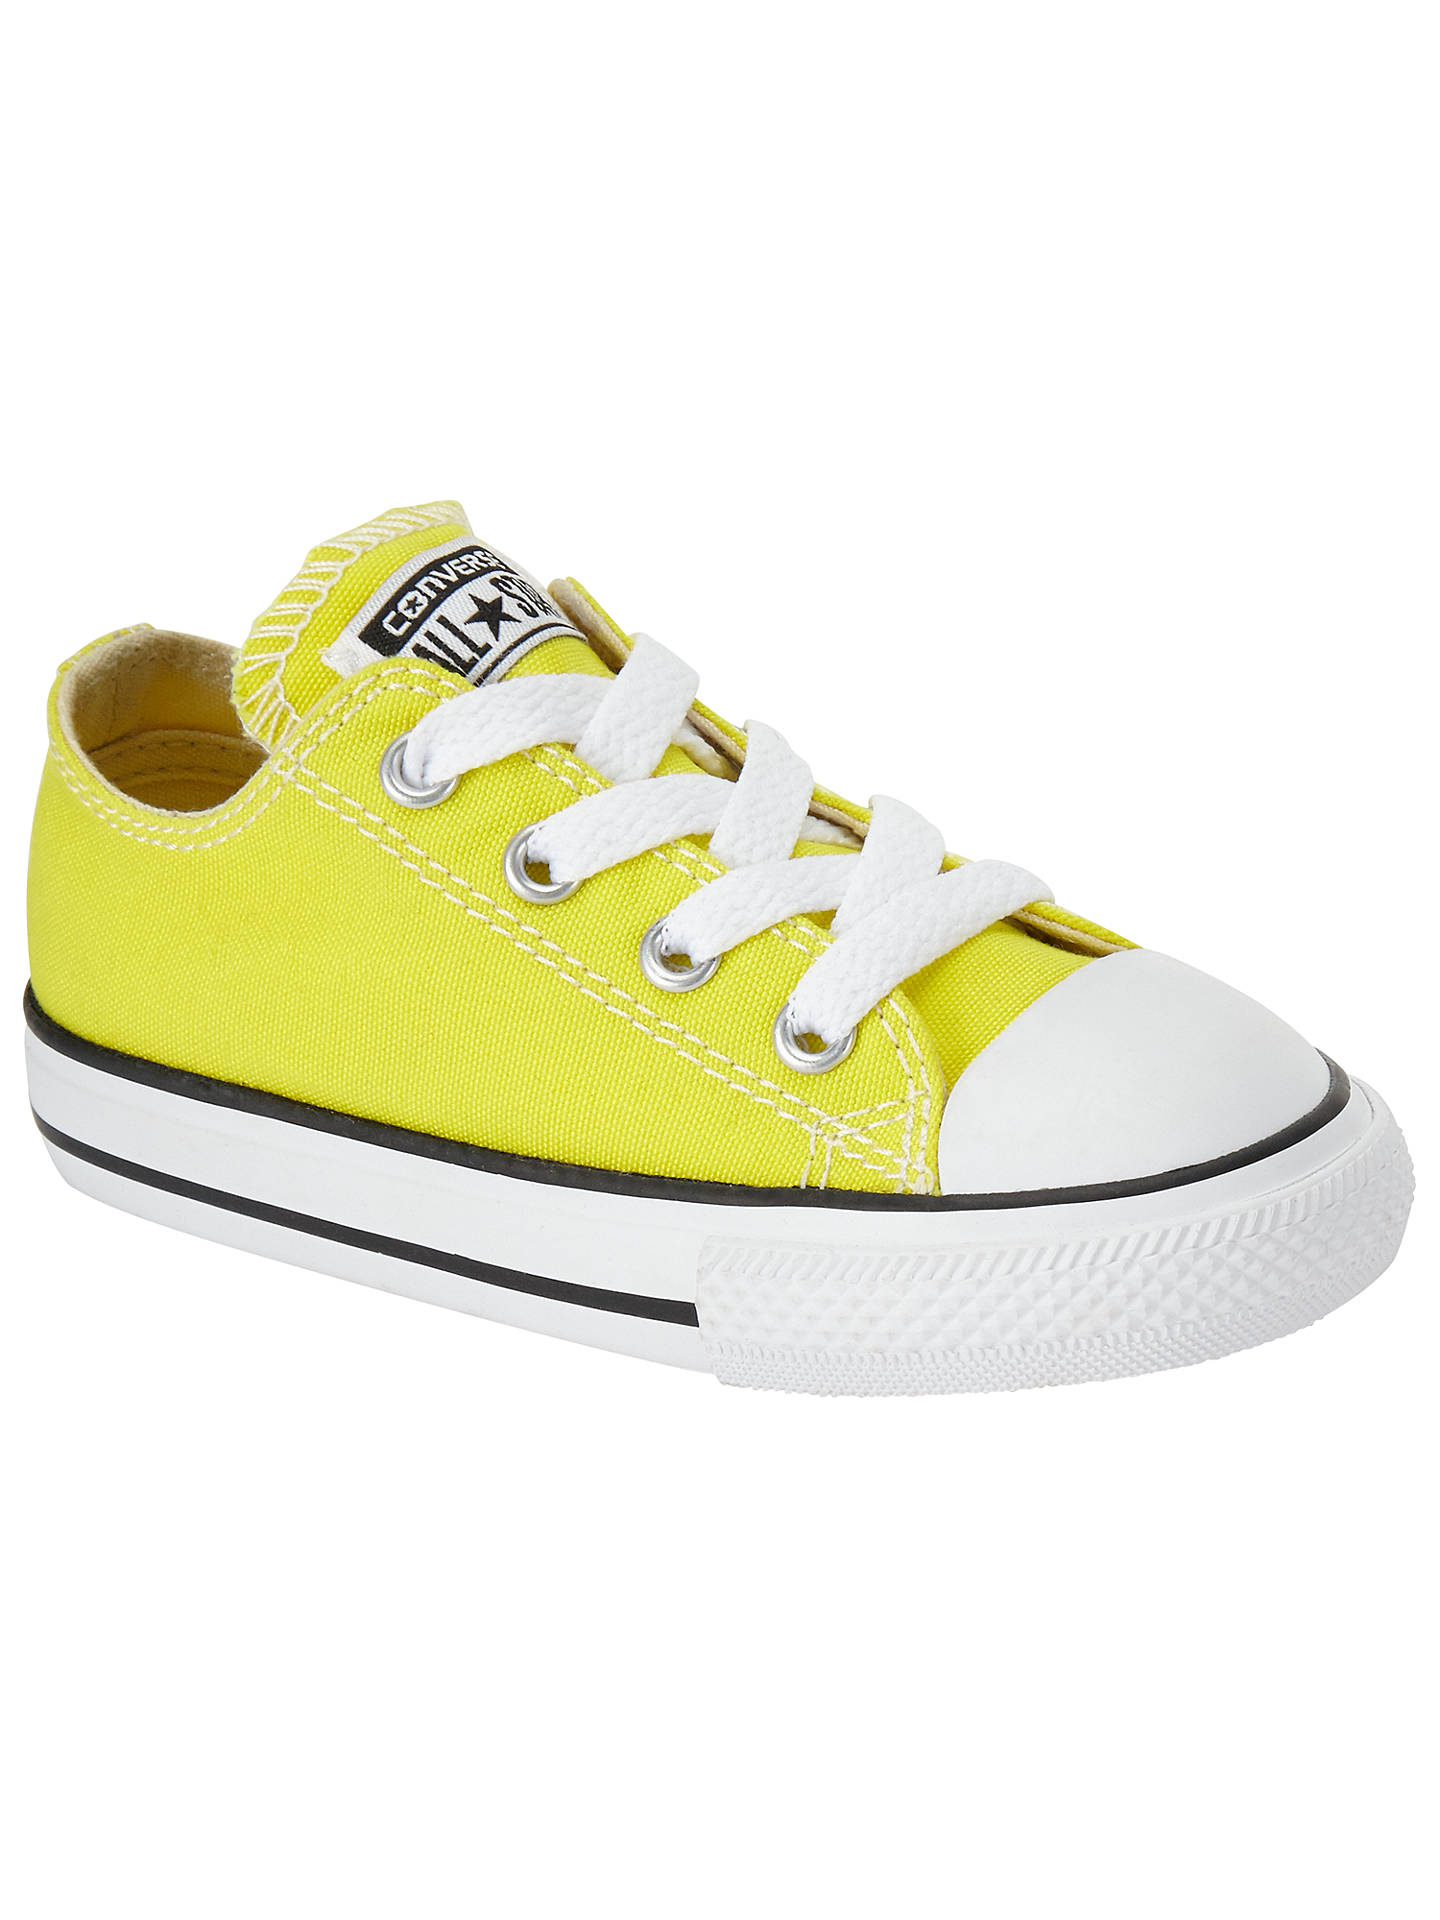 Converse Children S Chuck Taylor All Star Low Top Canvas Shoes